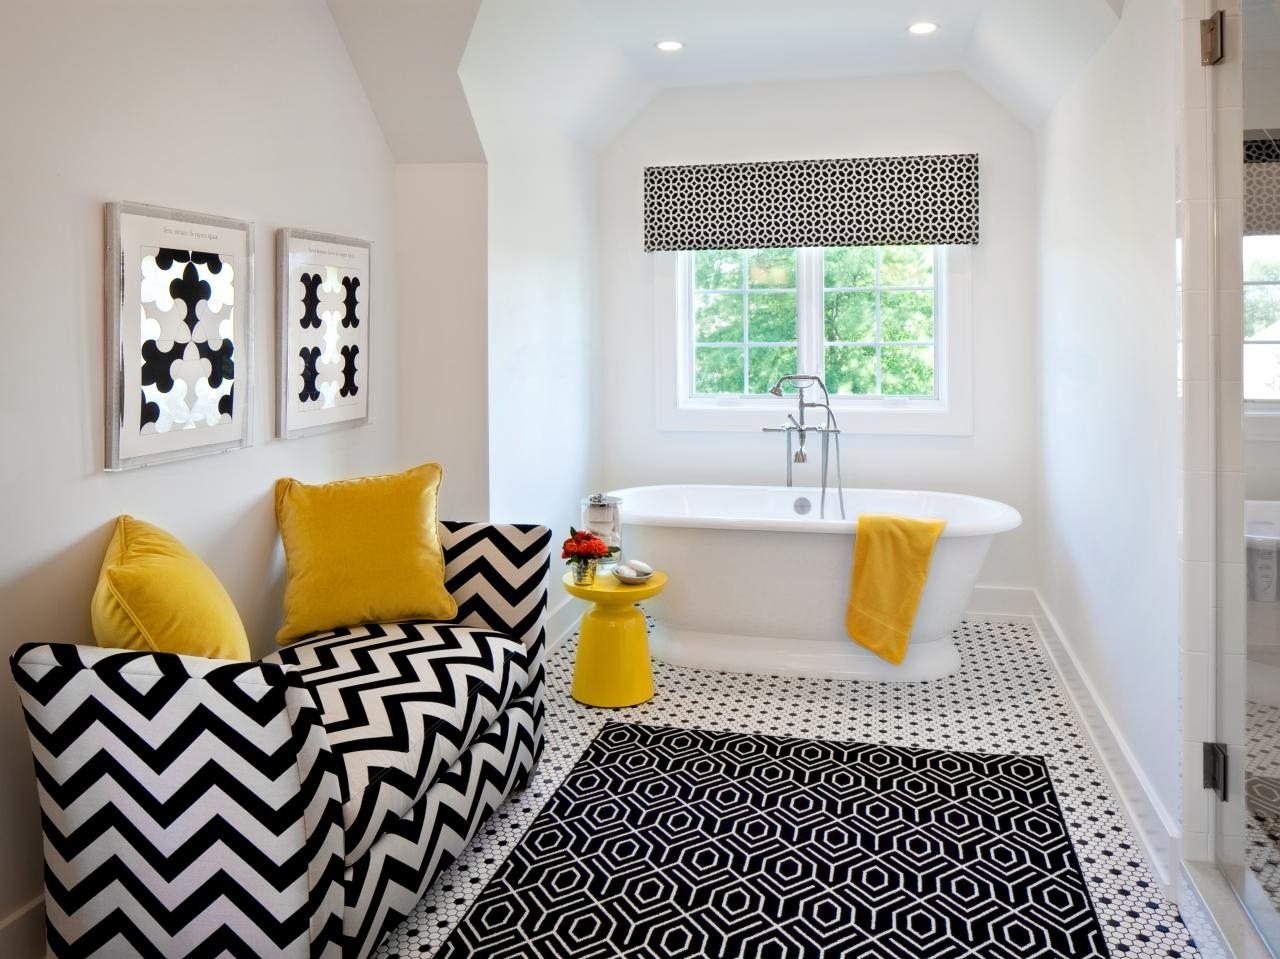 black and white bathroom decor ideas + hgtv pictures | hgtv